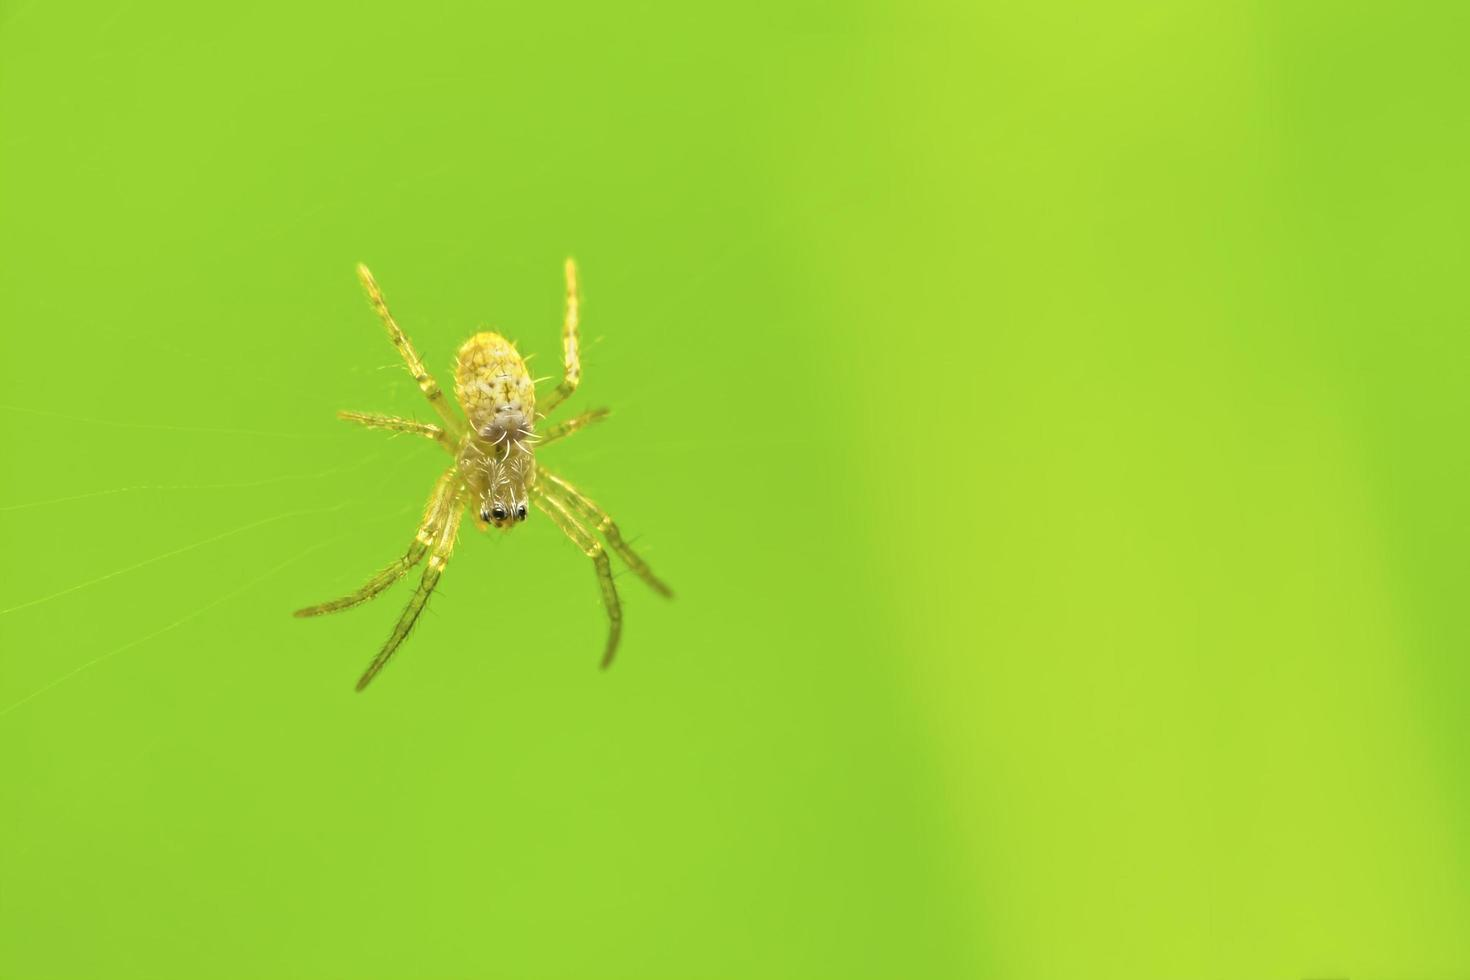 spider on cobweb and green background photo